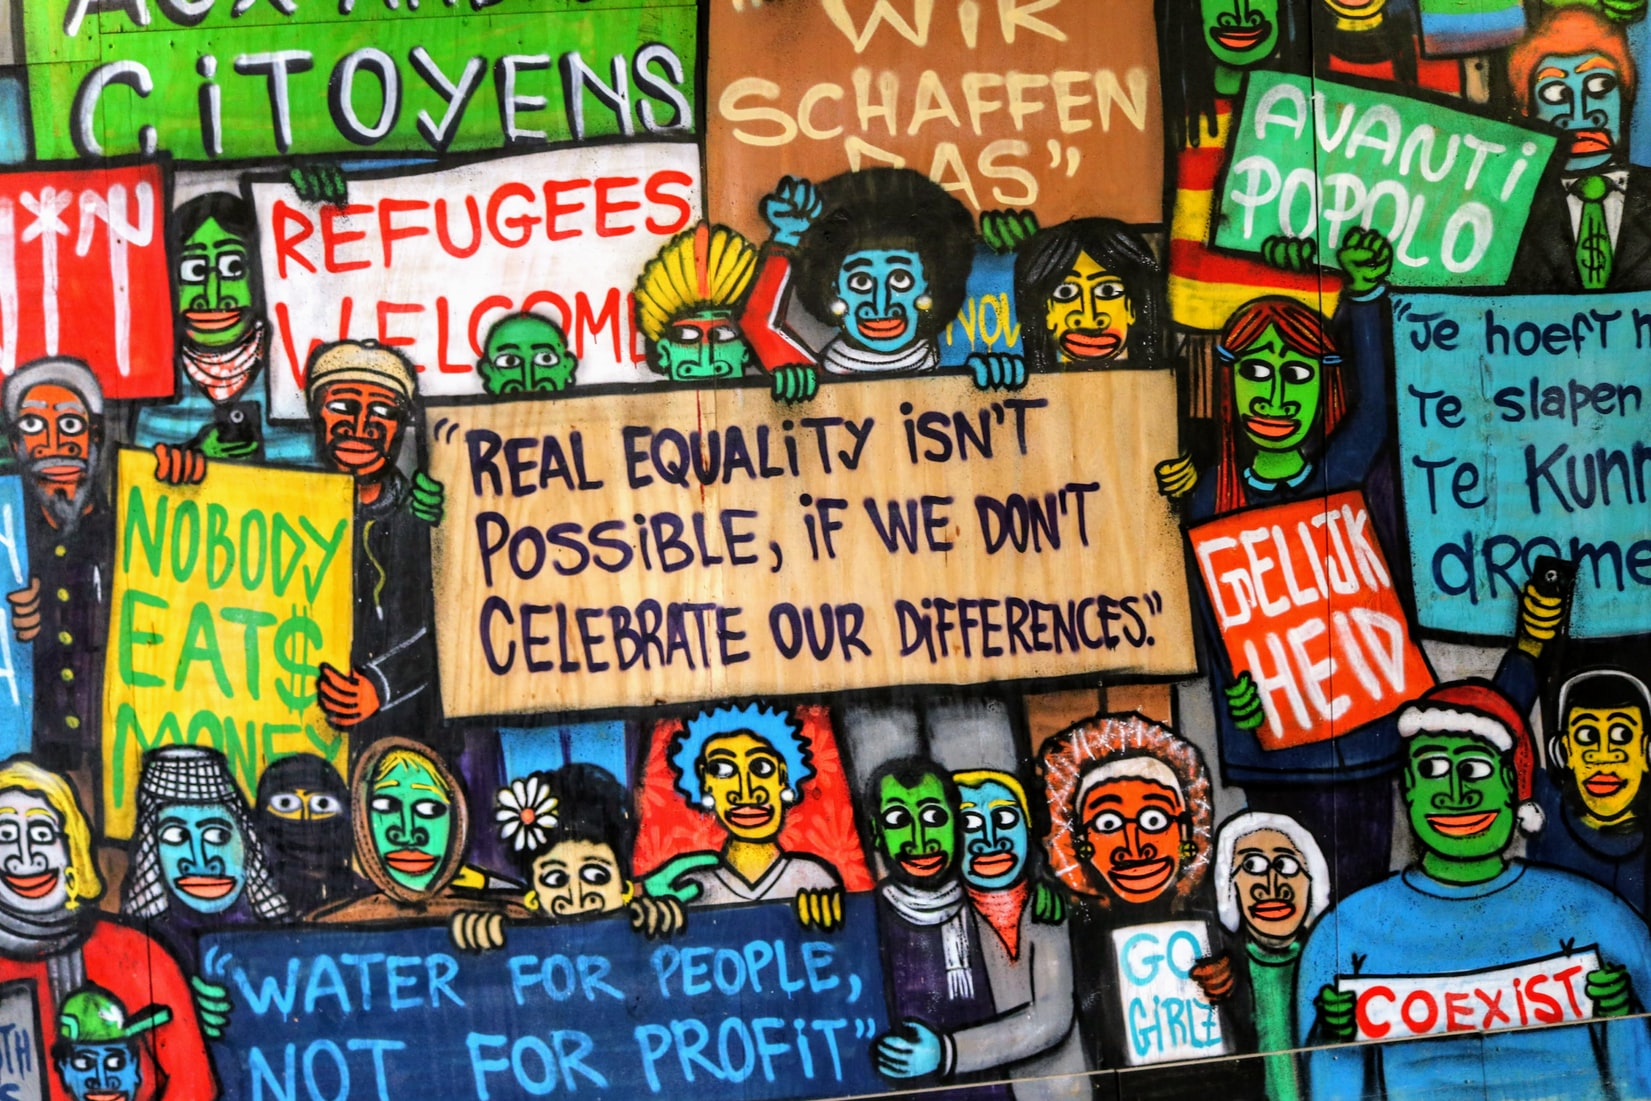 Colorful painting of cartoon figures holding different quotes related to racism and equality